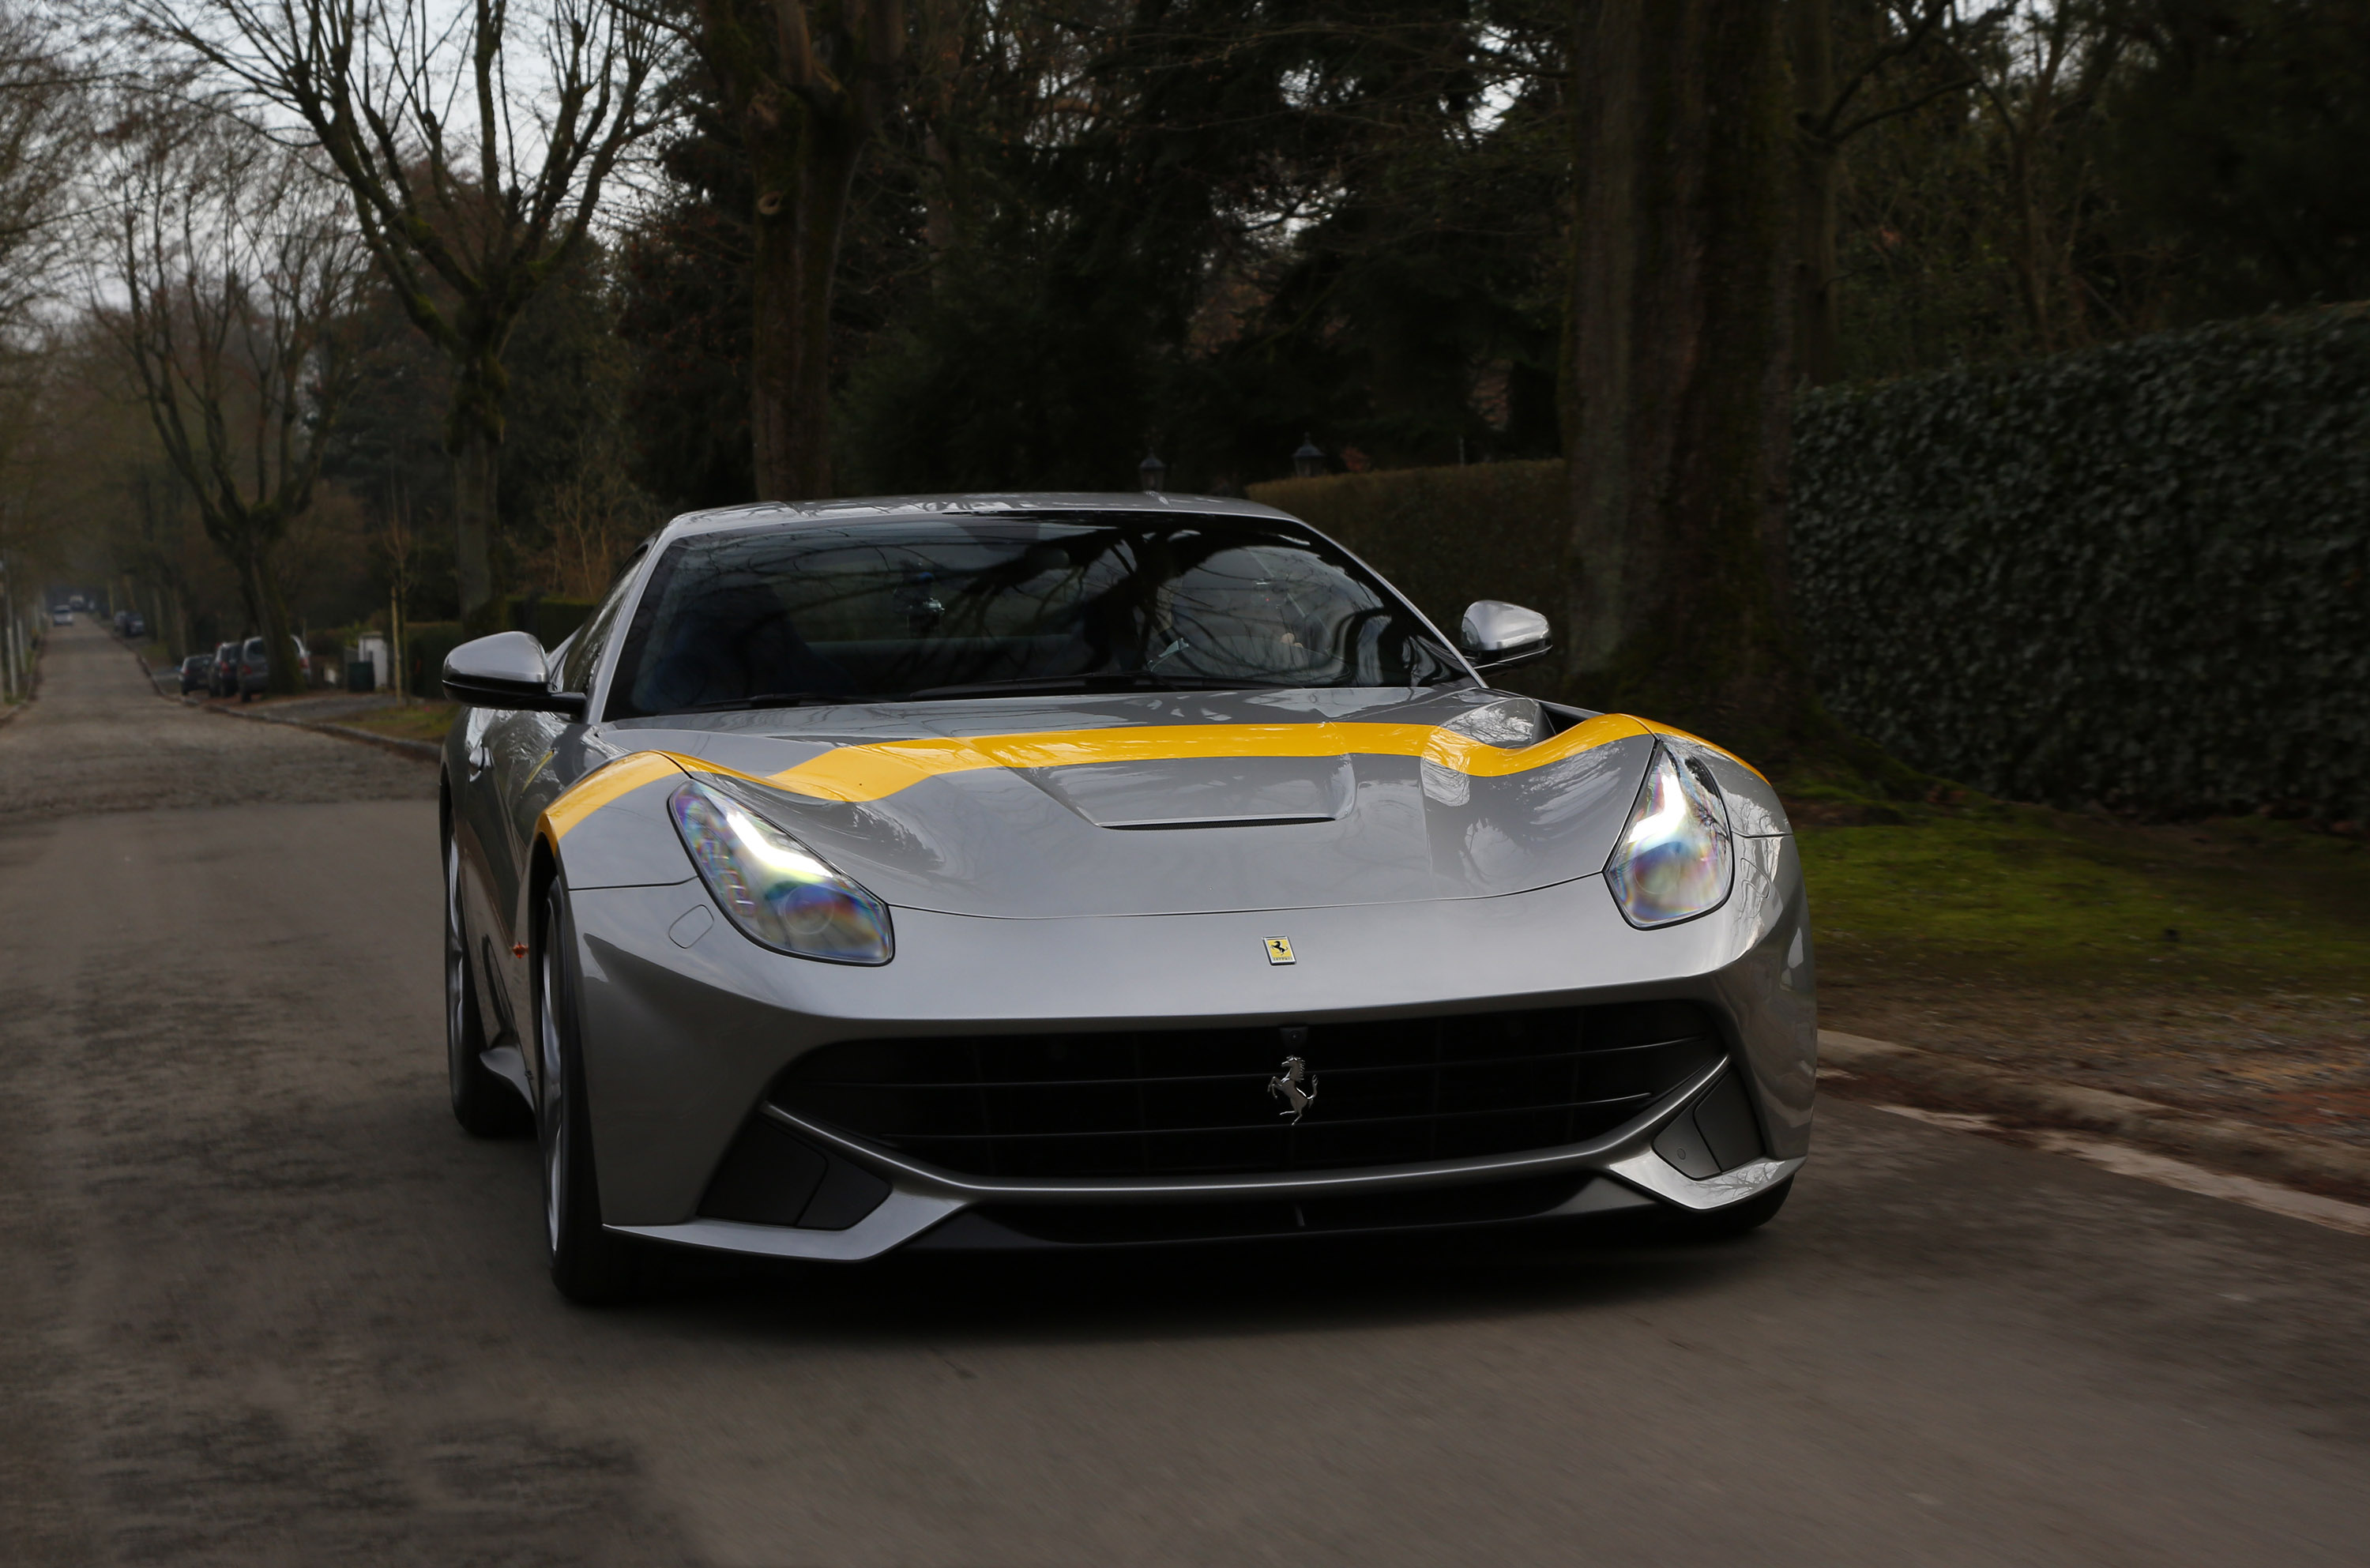 Ferrari F12berlinetta Tour De France 64 Revealed